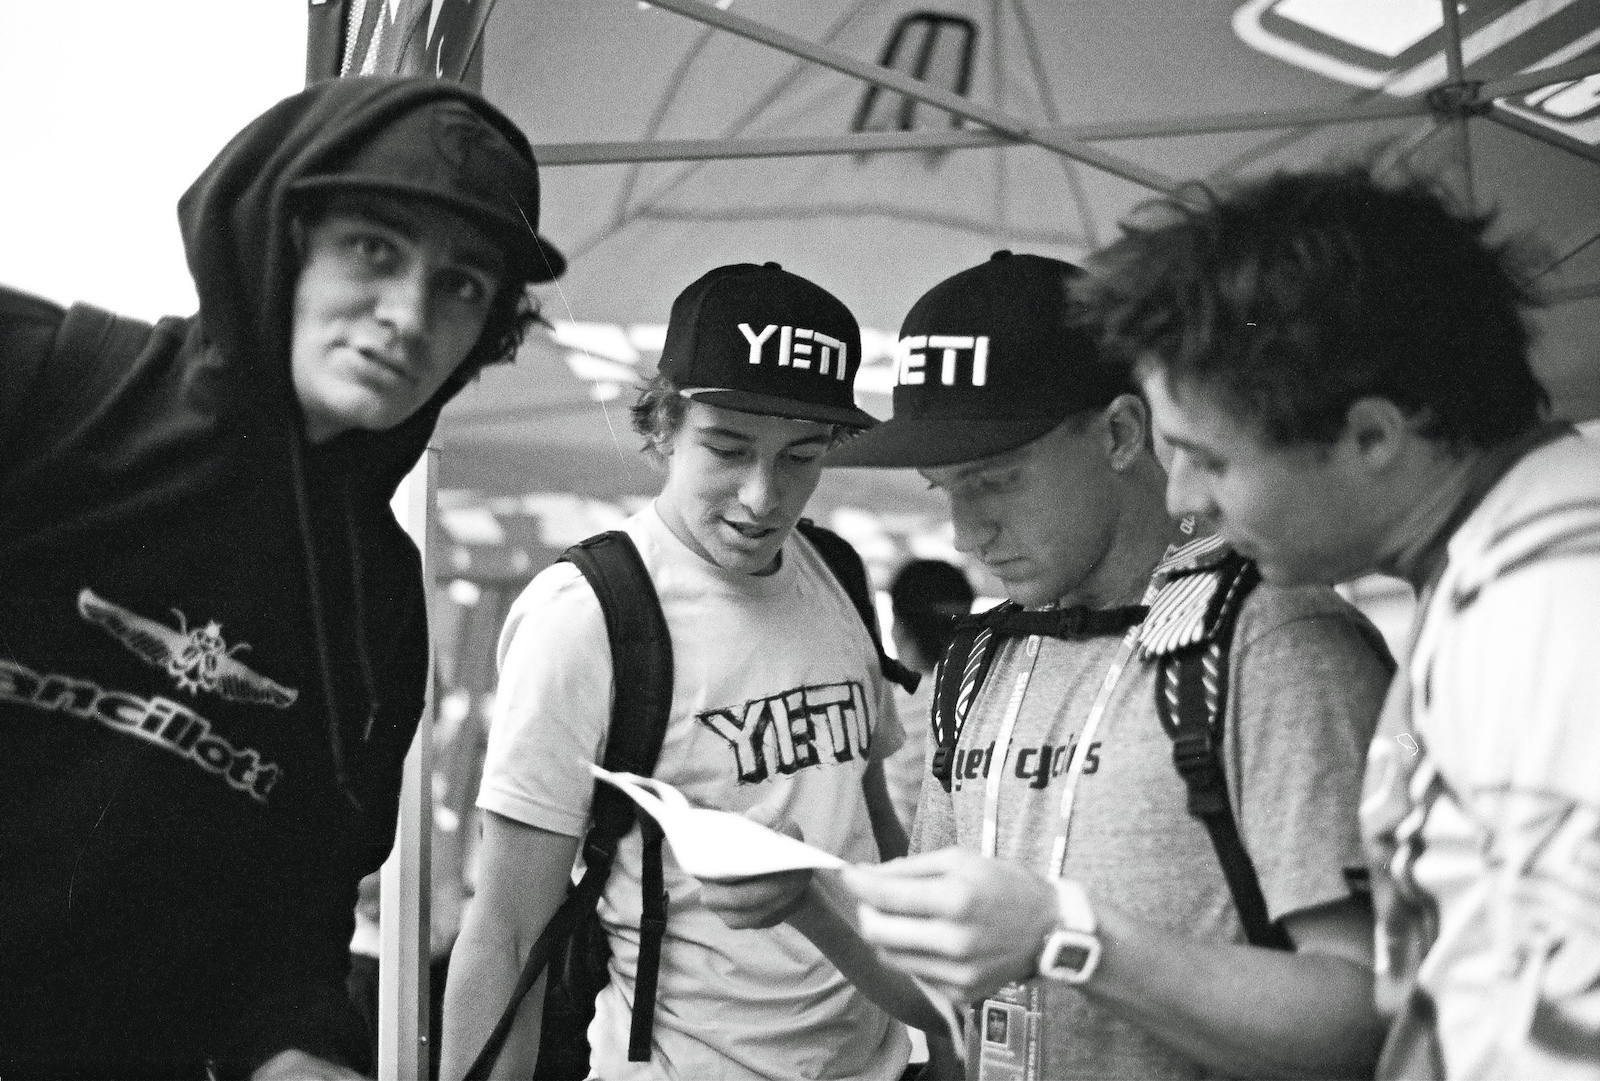 The 2009 YETI team with Sam Blenkinsop Aaron Gwin Jared Graves at the World Cup Pietermaritzburg South Africa. Aaron Gwin is checking his qualification results. Shot with LEICA M6 35mm f 1.4 Summilux